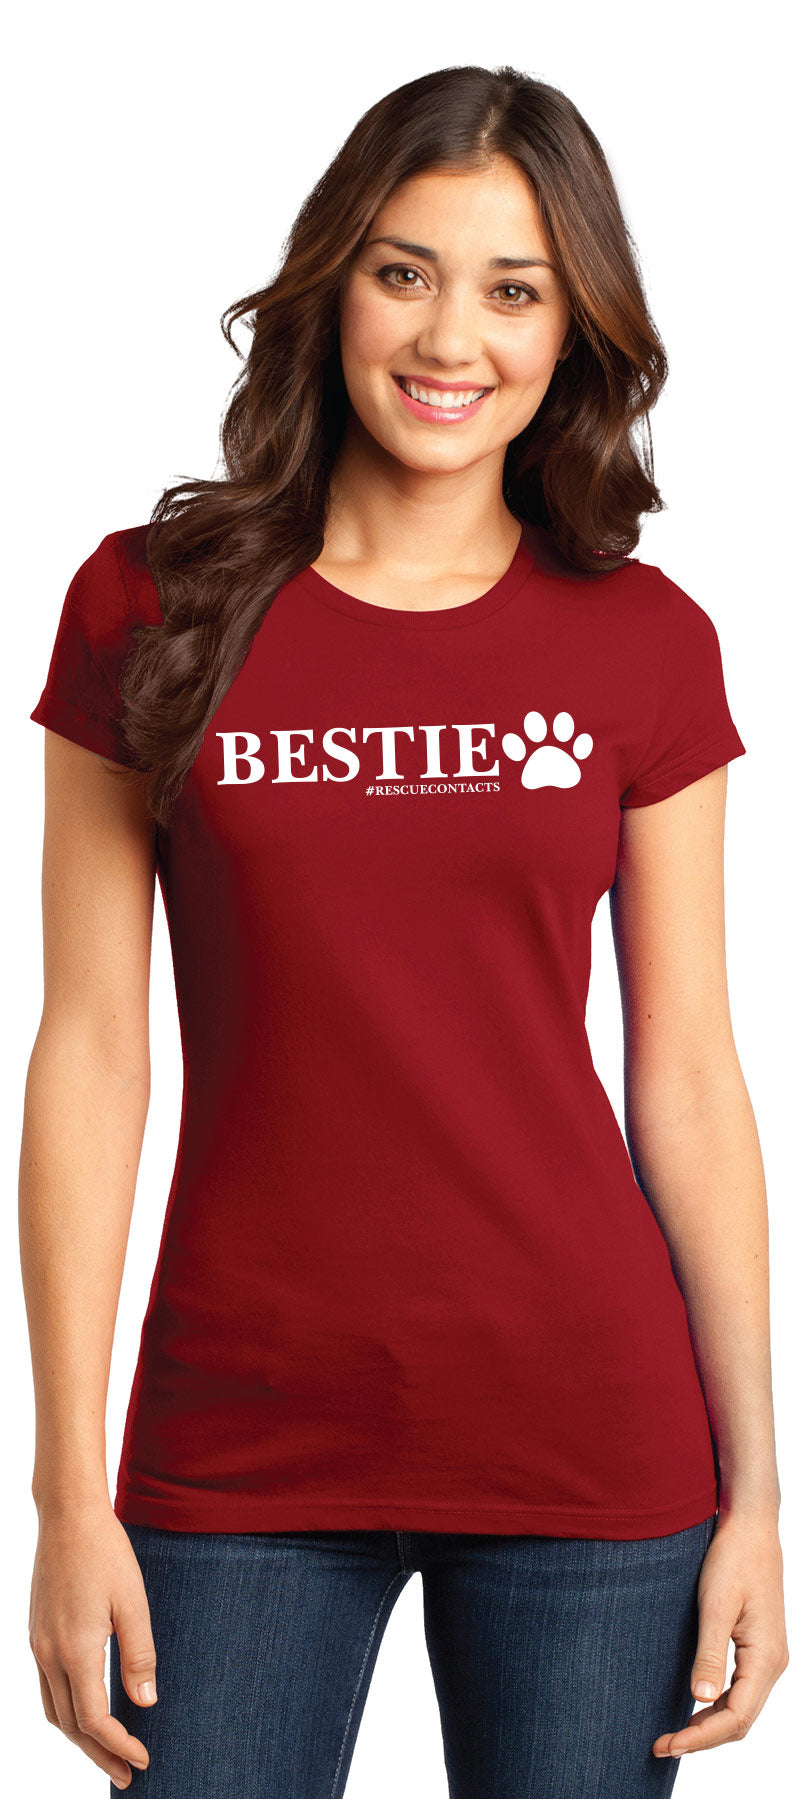 White women's tee shirt that says bestie in black print with dog paw and # rescue contacts